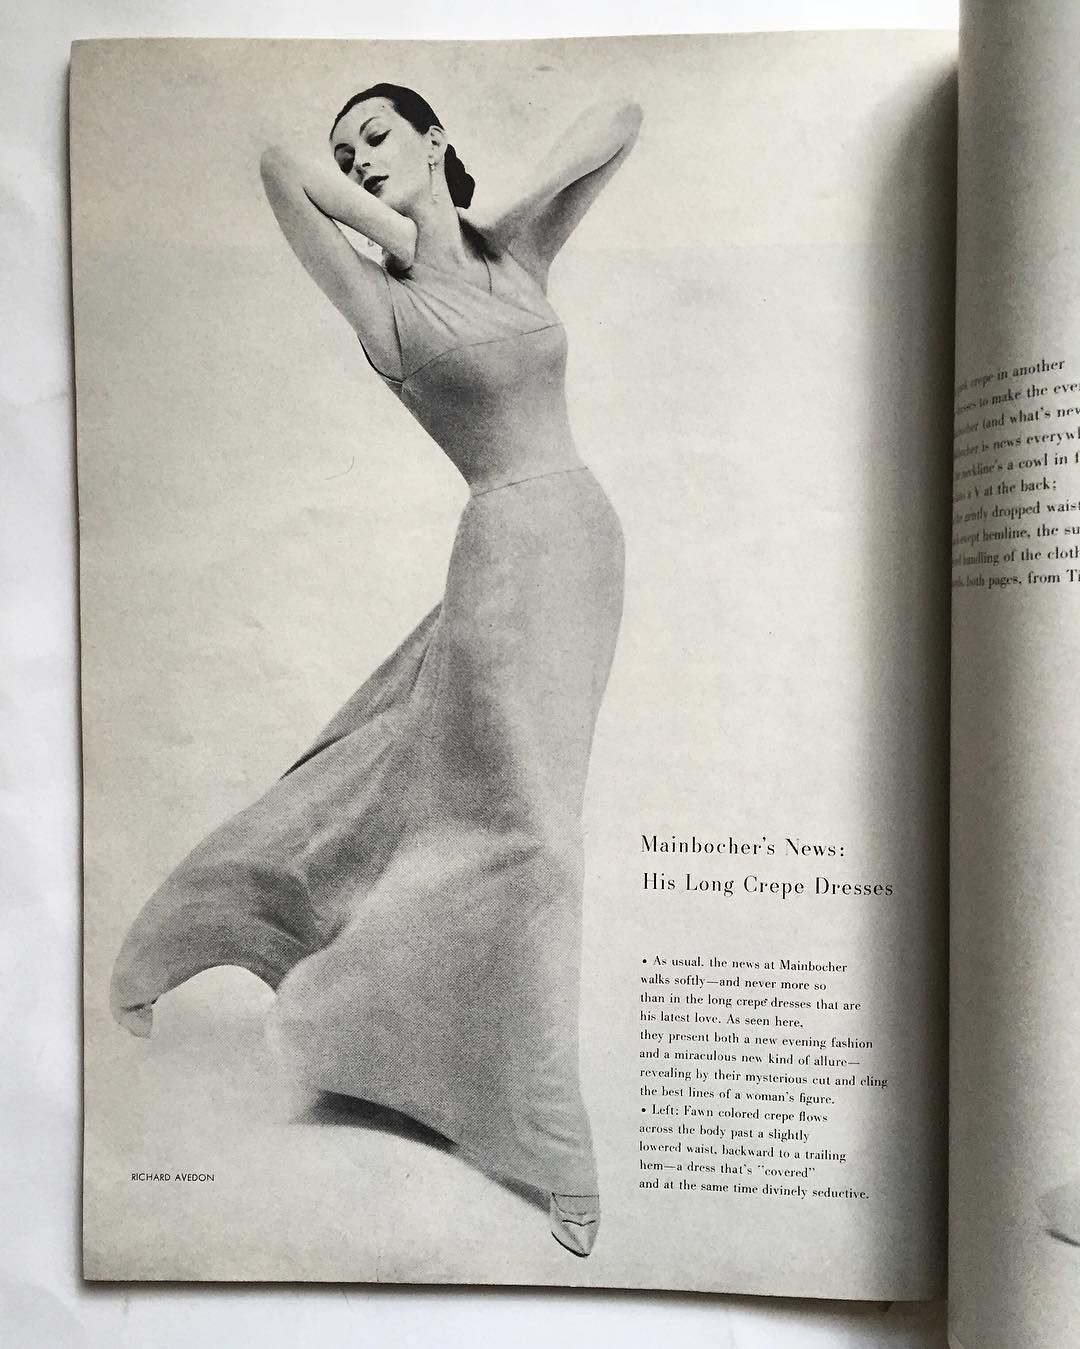 The statuesque silhouette of #Dovima wearing #Mainbocher long crepe dress, by #RichardAvedon - #HarpersBazaar December 1956 from my collection #avedon #bazaar #vintage #vintagebazaar #vintagemagazine #vintagefashion #vintagecouture #fashion #fashionphotography #fashionhistory #dresshistory #dress #fashionresearch #histoiredelamode #chic #style #dianavreeland #carmelsnow #covergirl #beauty #americancouture #couture #fashionphotographer #silhouette #fiftiesfashion @harpersbazaarus @dvdianav...